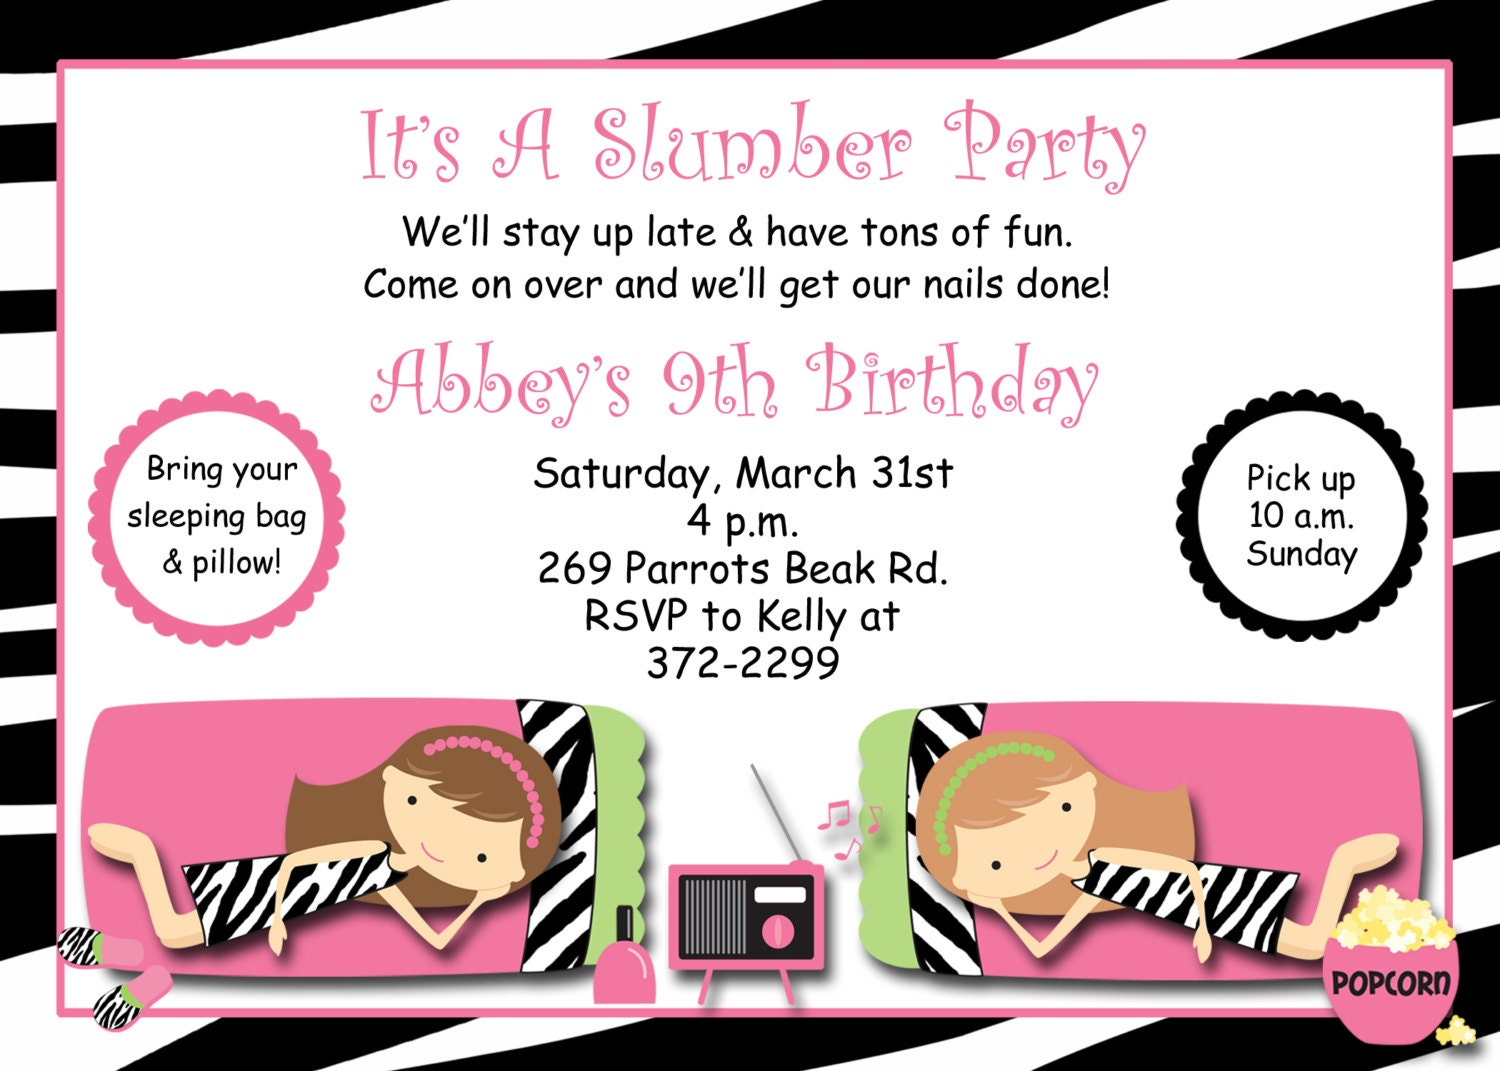 It's just a picture of Resource Printable Slumber Party Invitations